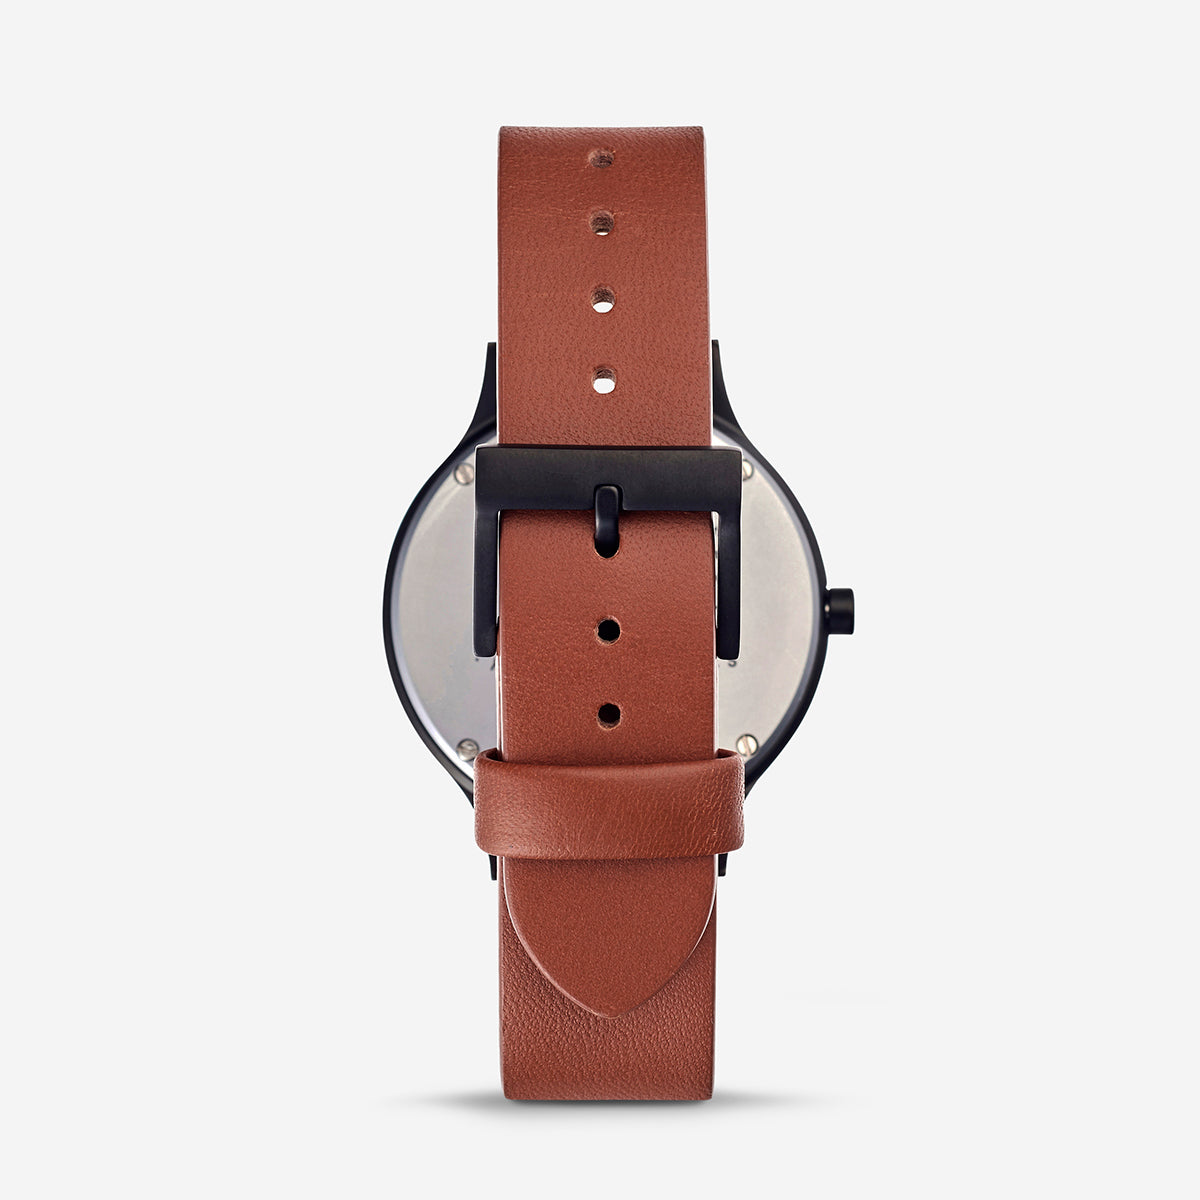 Status Anxiety Inertia Leather Unisex Watch - White Face/Tan Strap